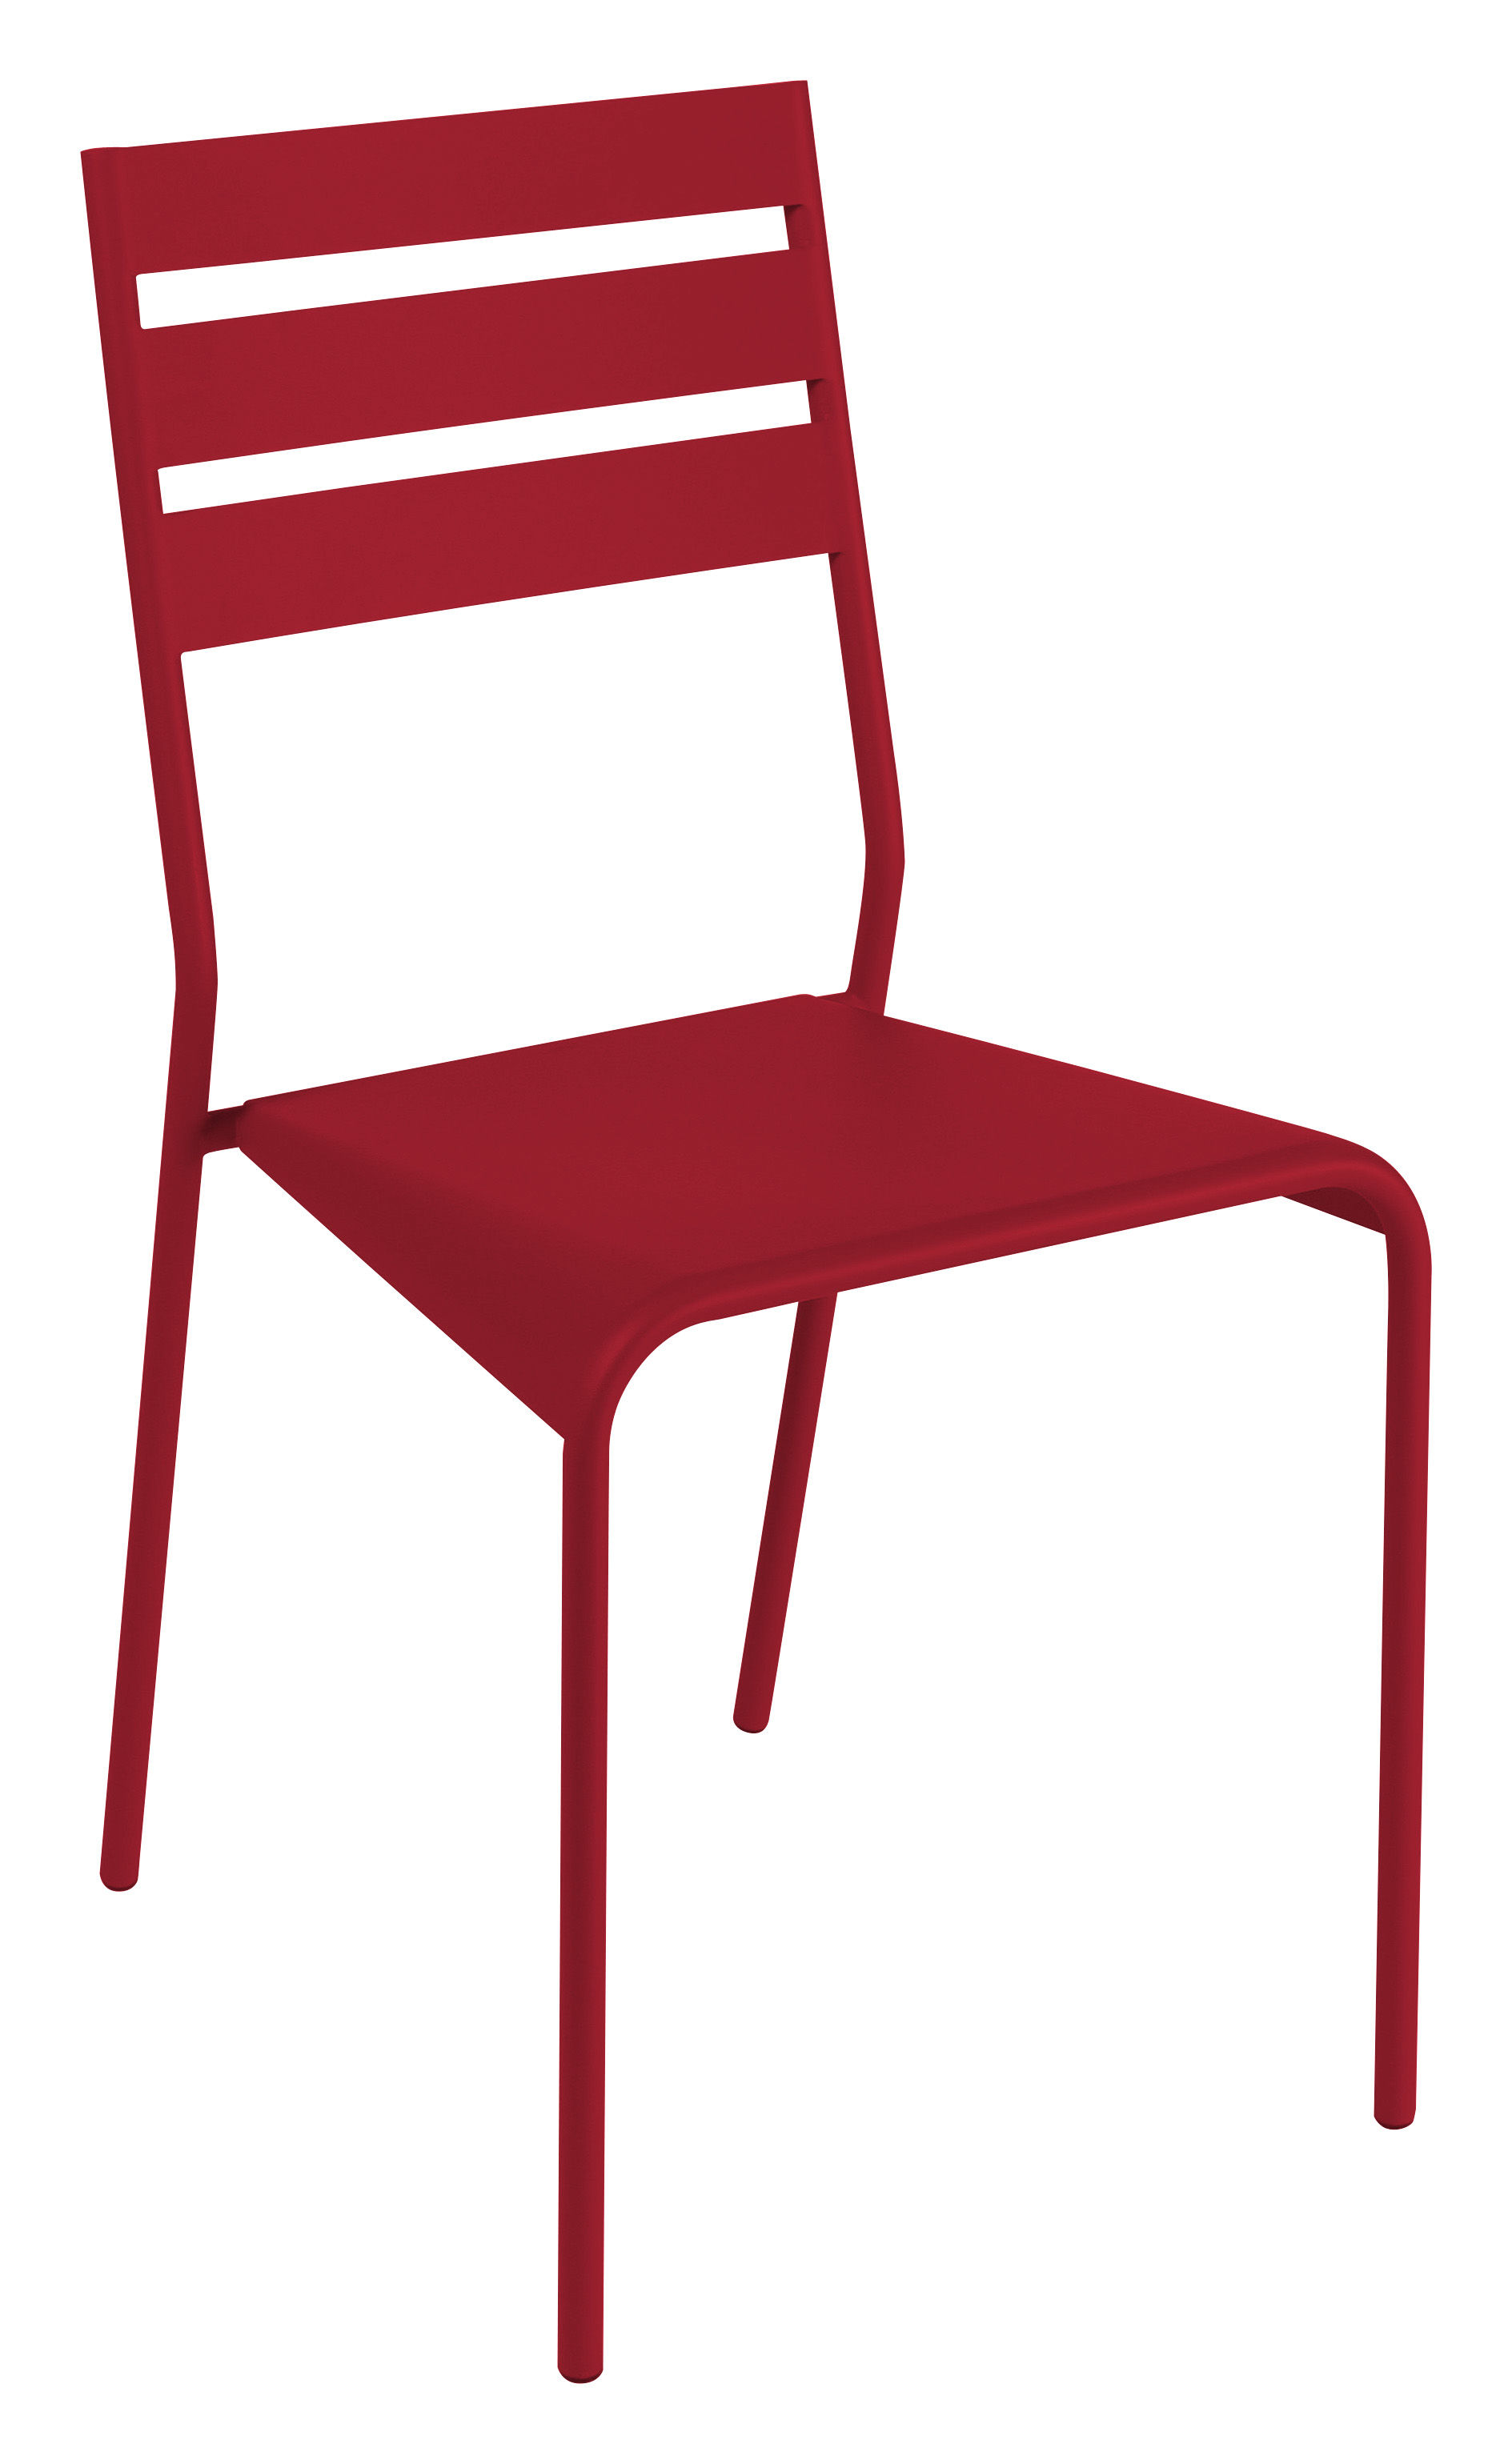 Furniture - Chairs - Facto Stacking chair by Fermob - Chili - Lacquered steel